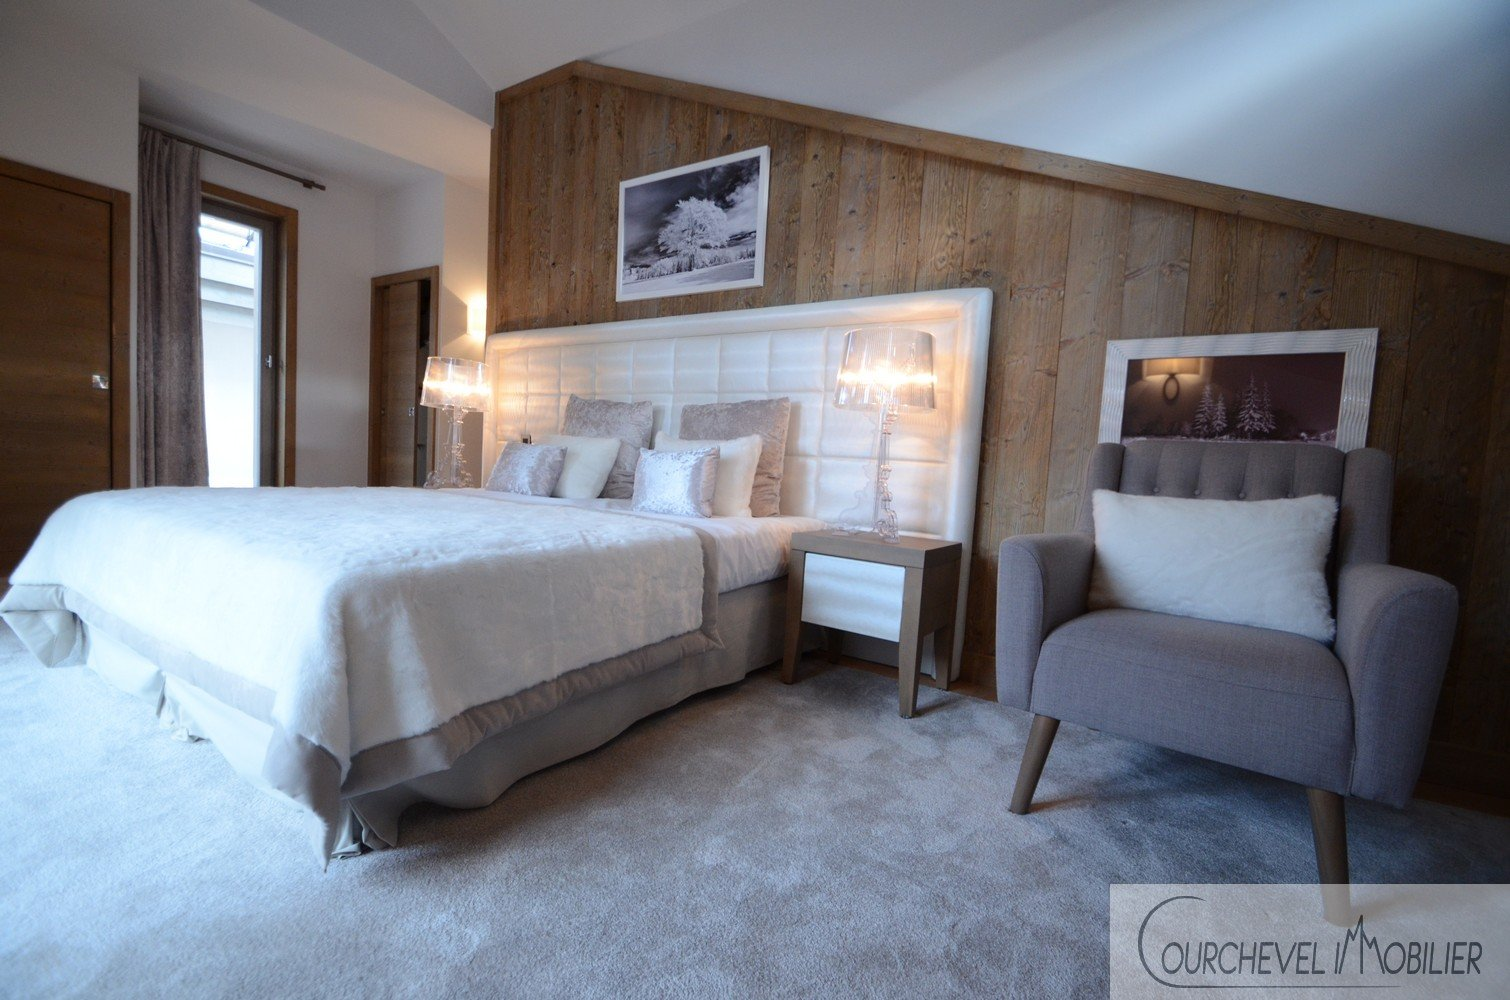 3 bedrooms duplex in Courchevel 1550